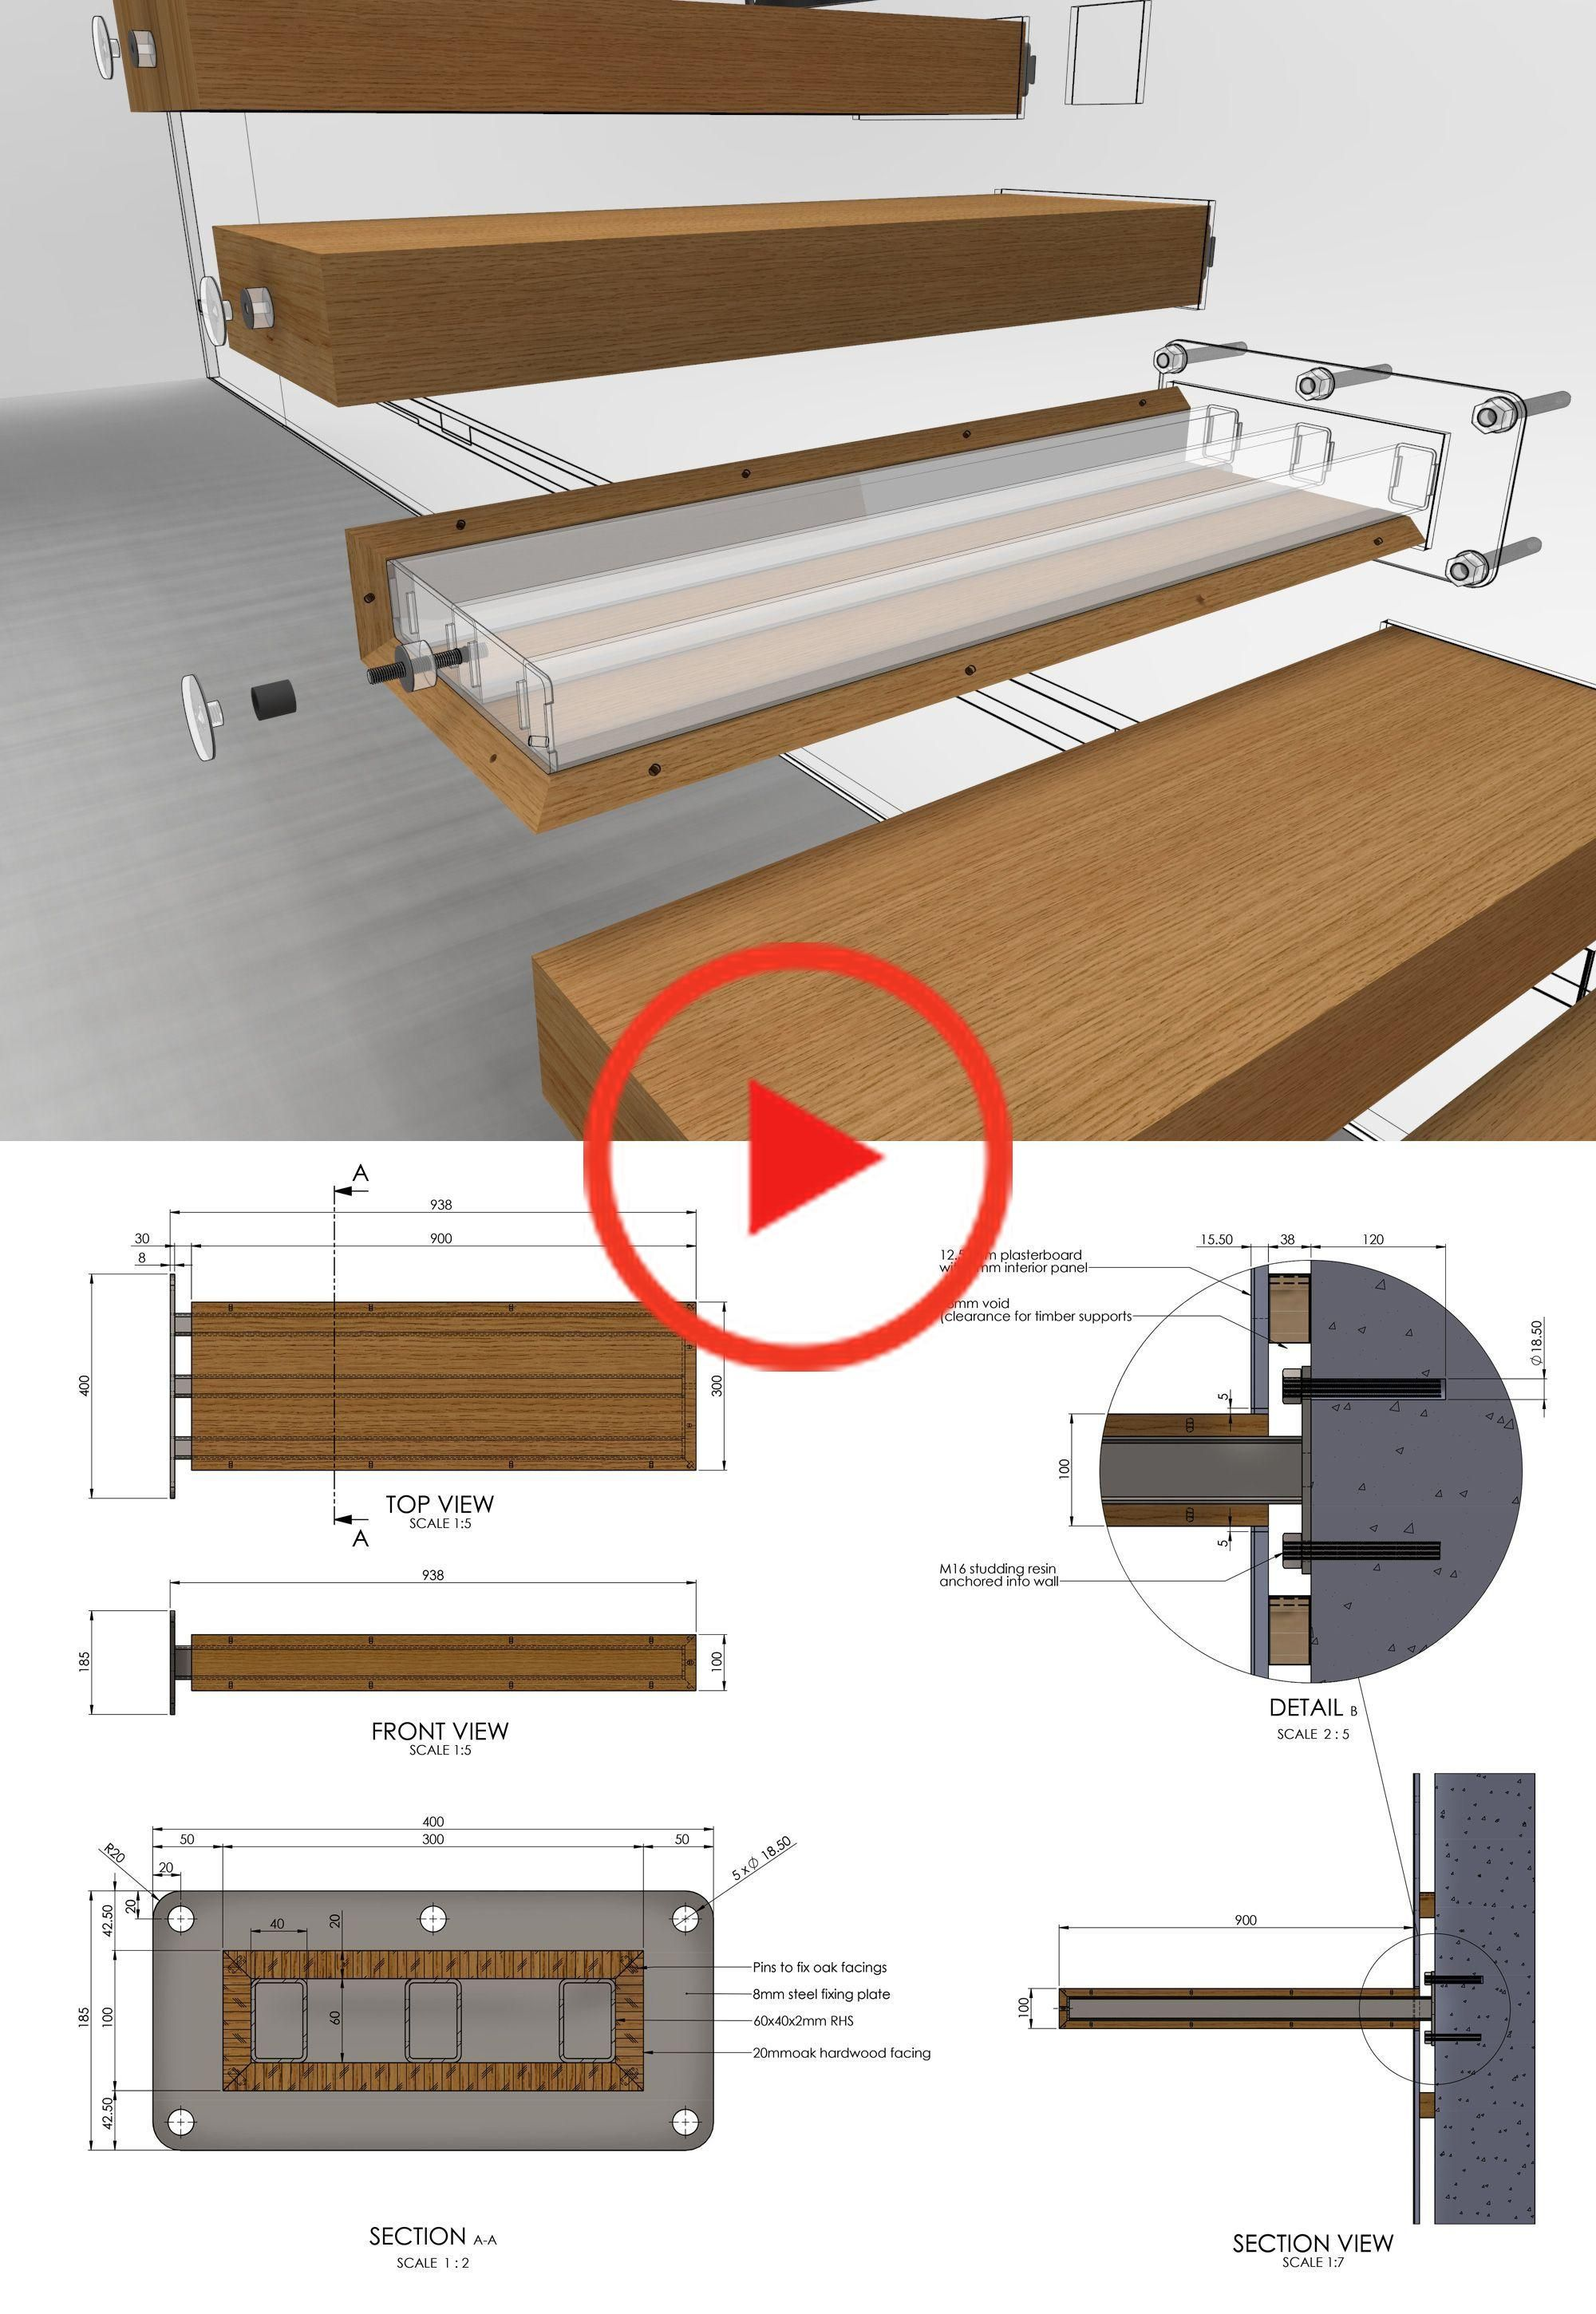 To learn how to design a cantilevered staircase, visit homedesigntutorials.com #design